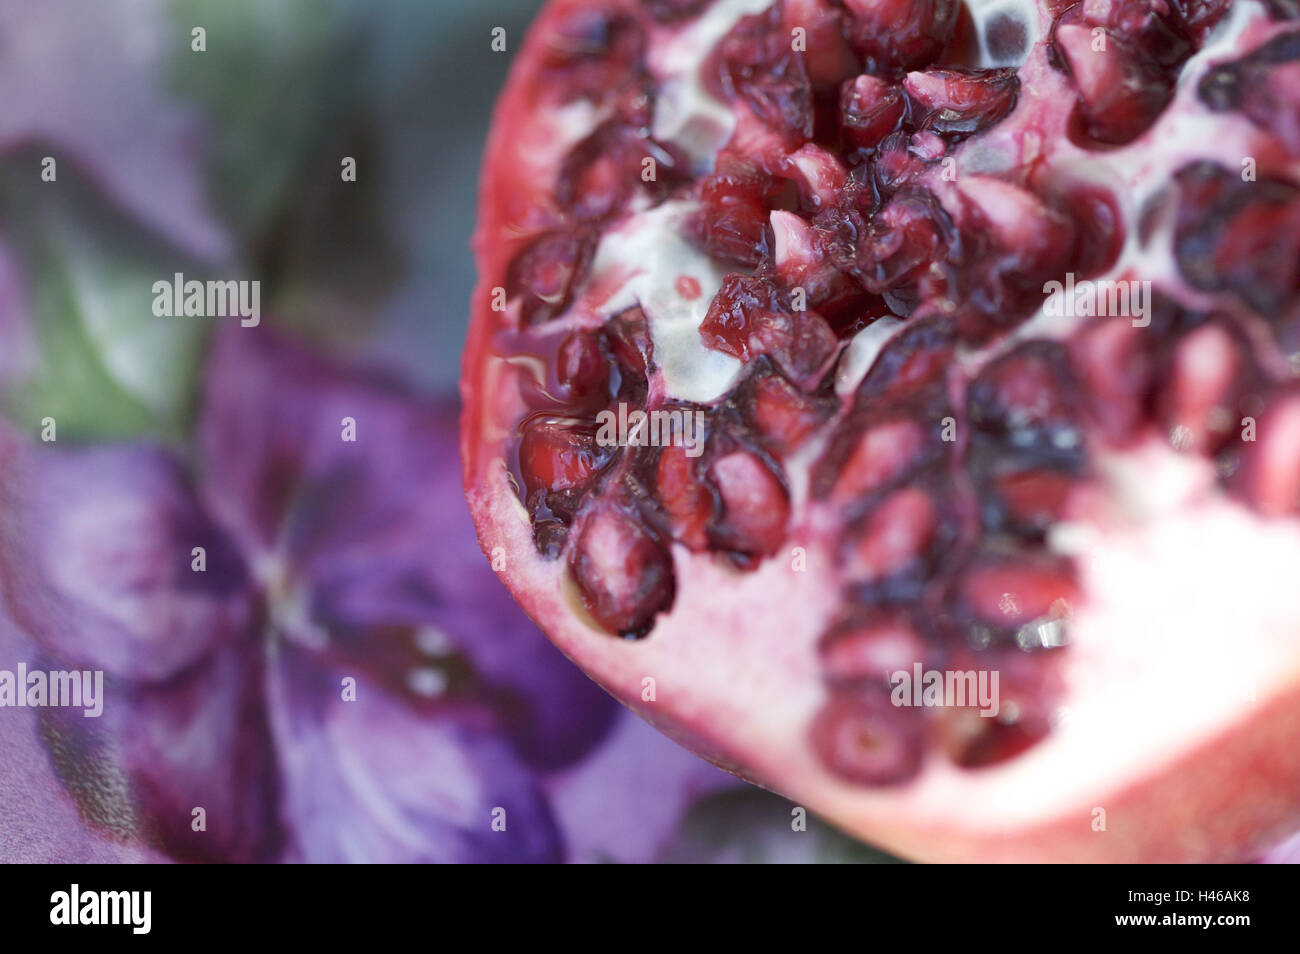 Pomegranate, cores, close up, - Stock Image